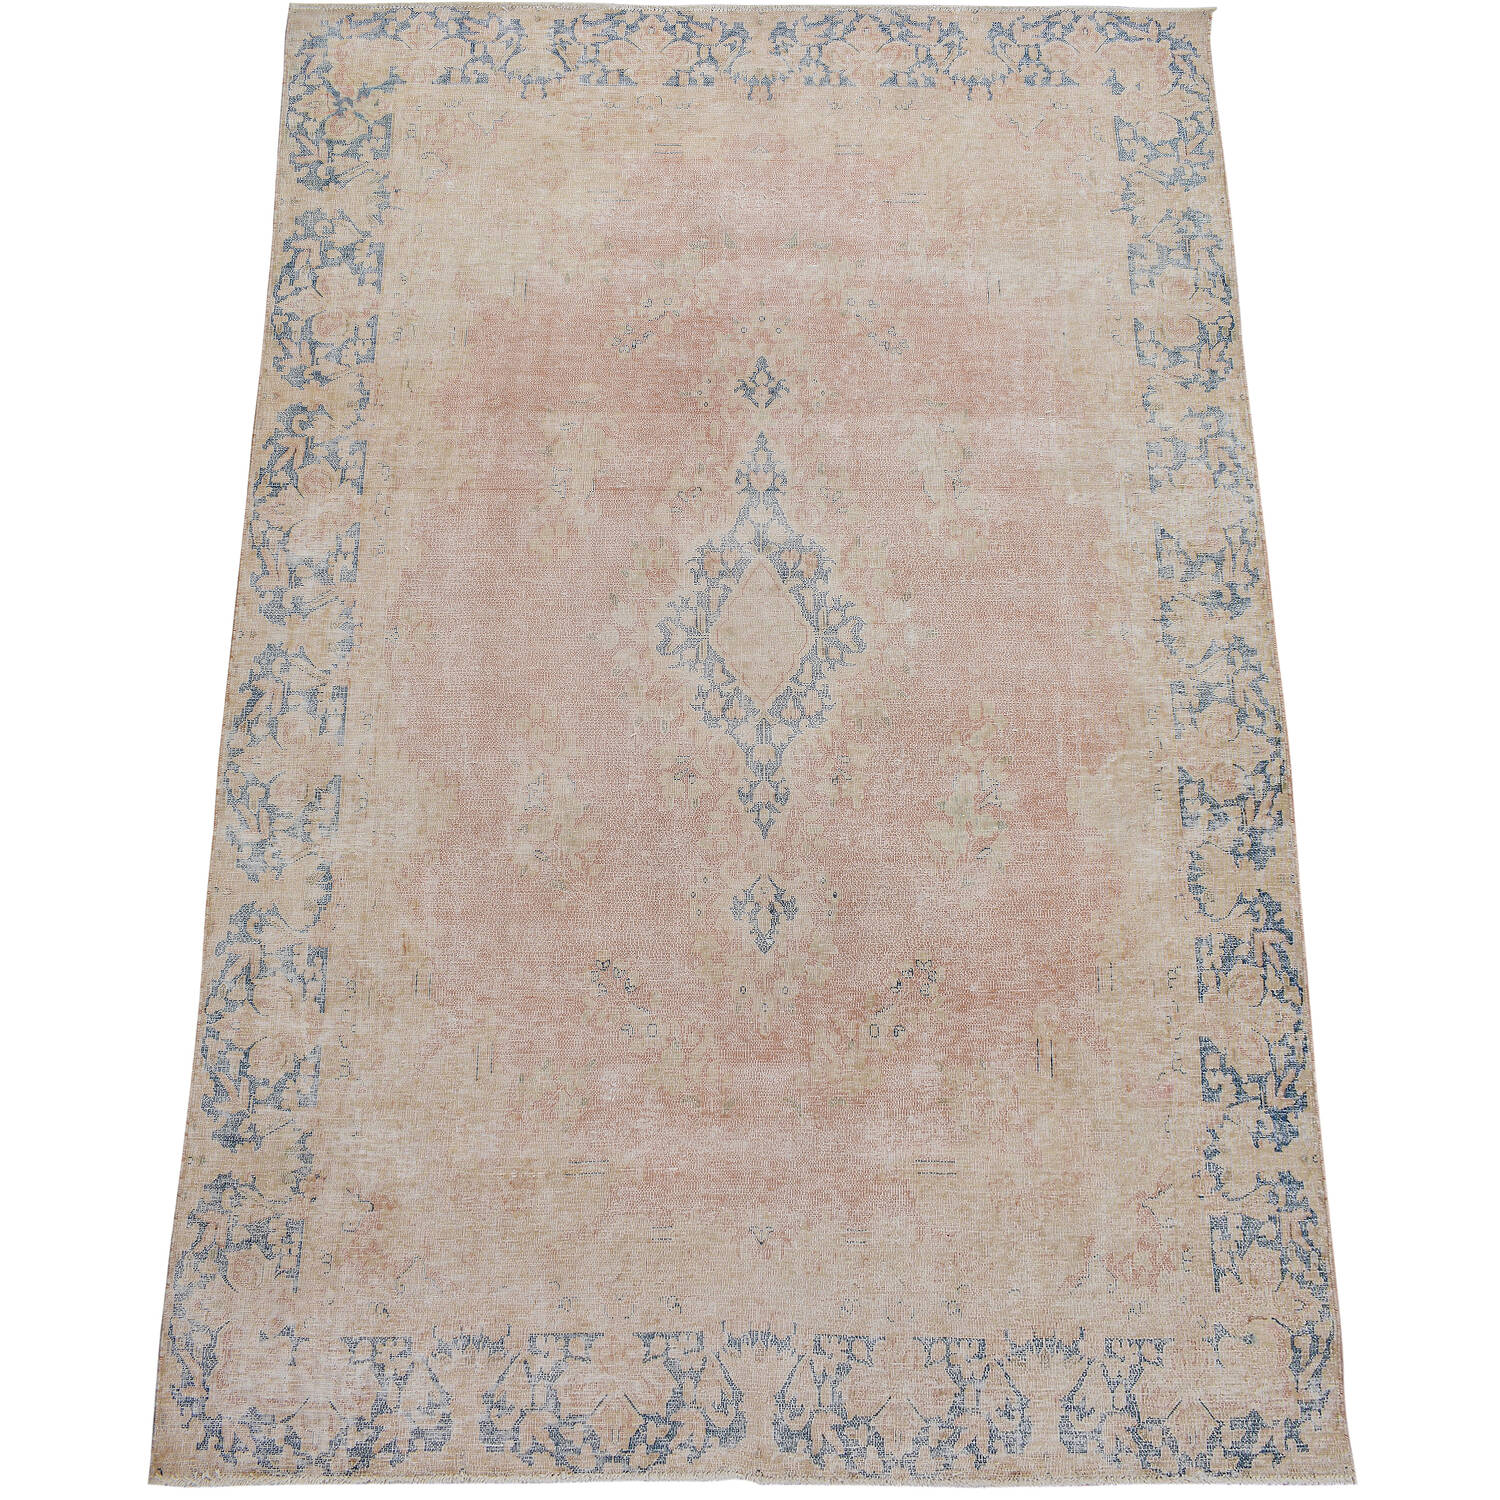 Antique Floral Muted Kerman Persian Area Rug 6x9 image 2